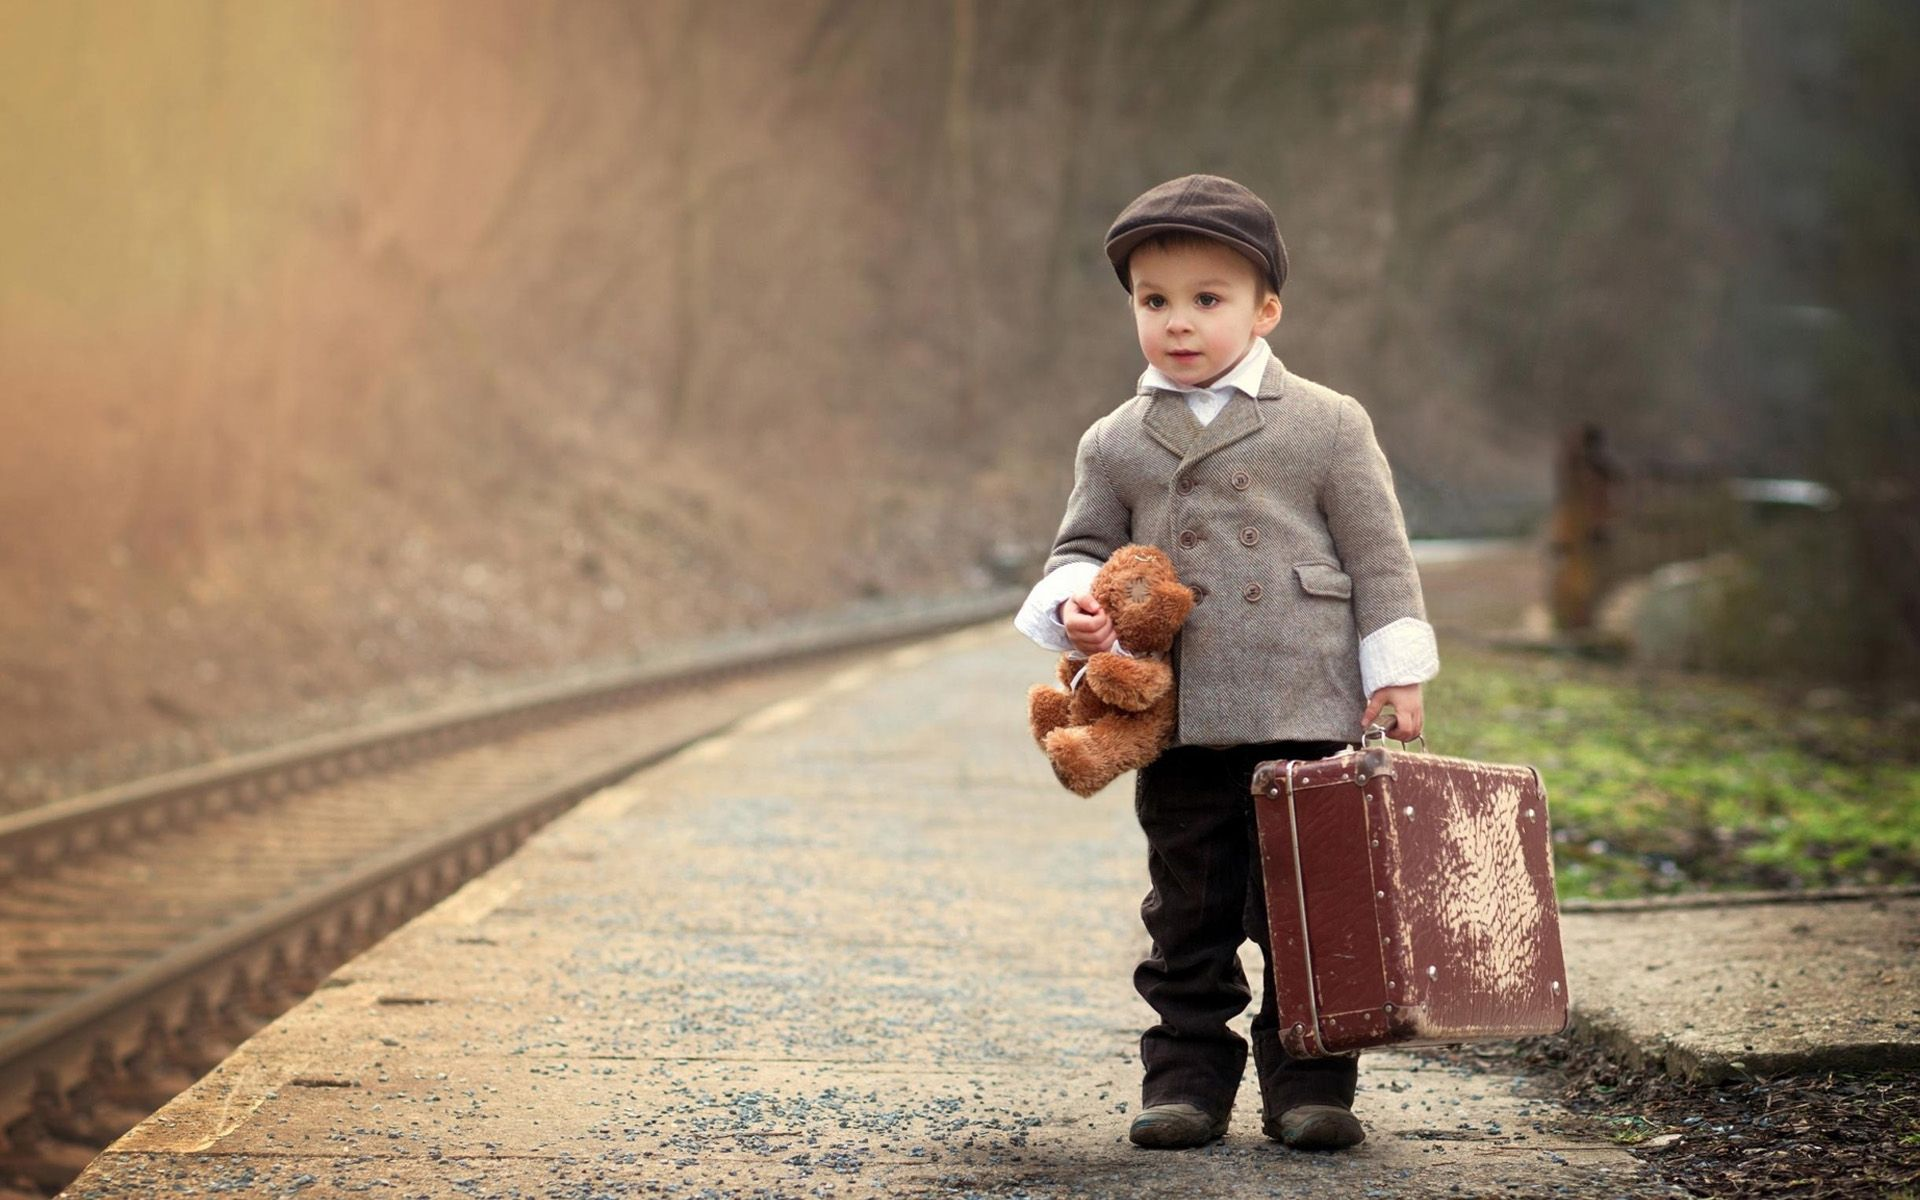 Stylish Little Boys Hd 4k Wallpapers Boy With A Suitcase 554337 Hd Wallpaper Backgrounds Download